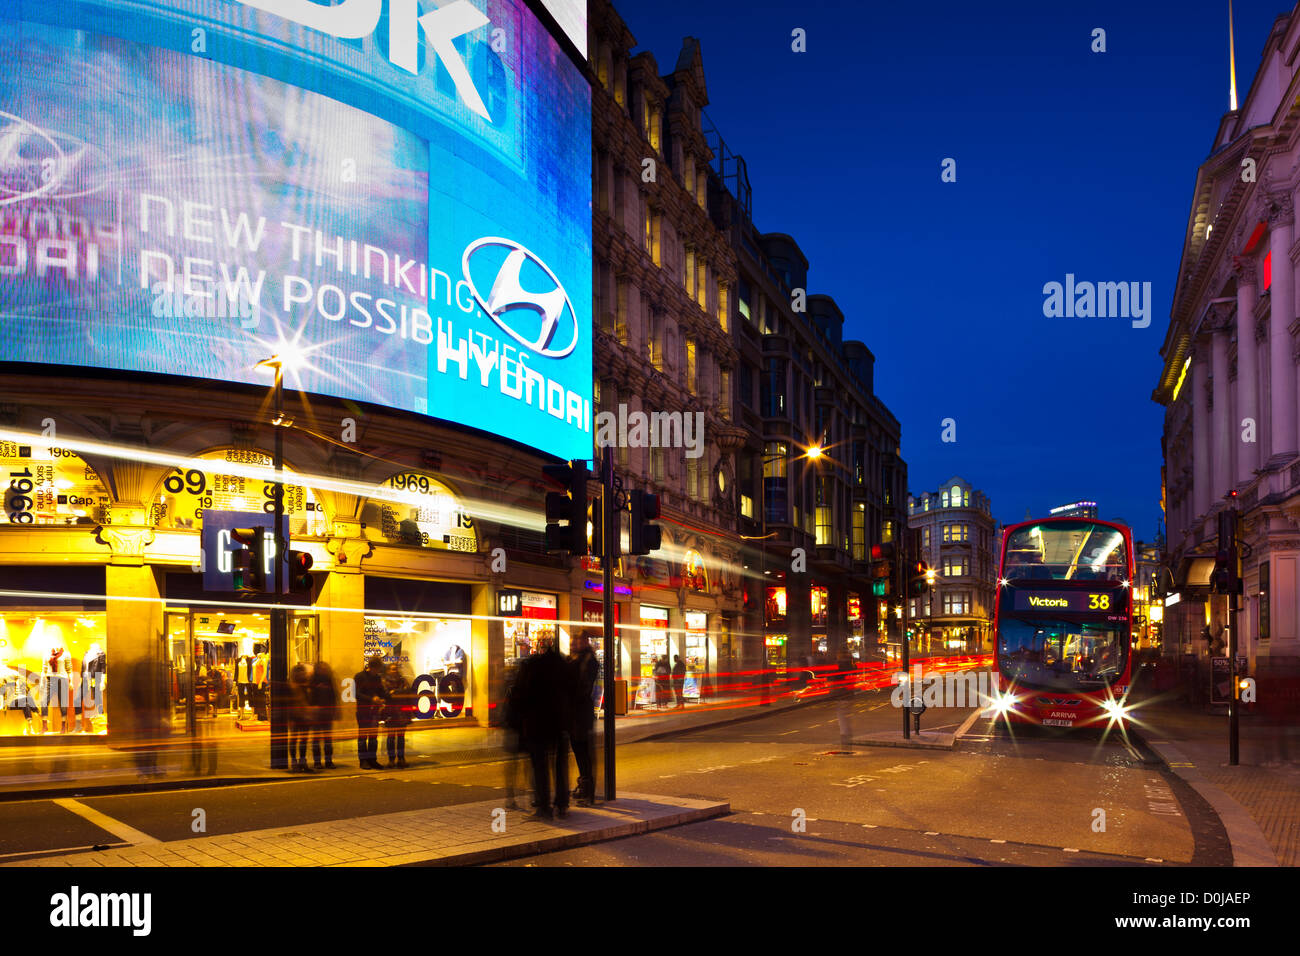 Piccadilly Circus at night. - Stock Image